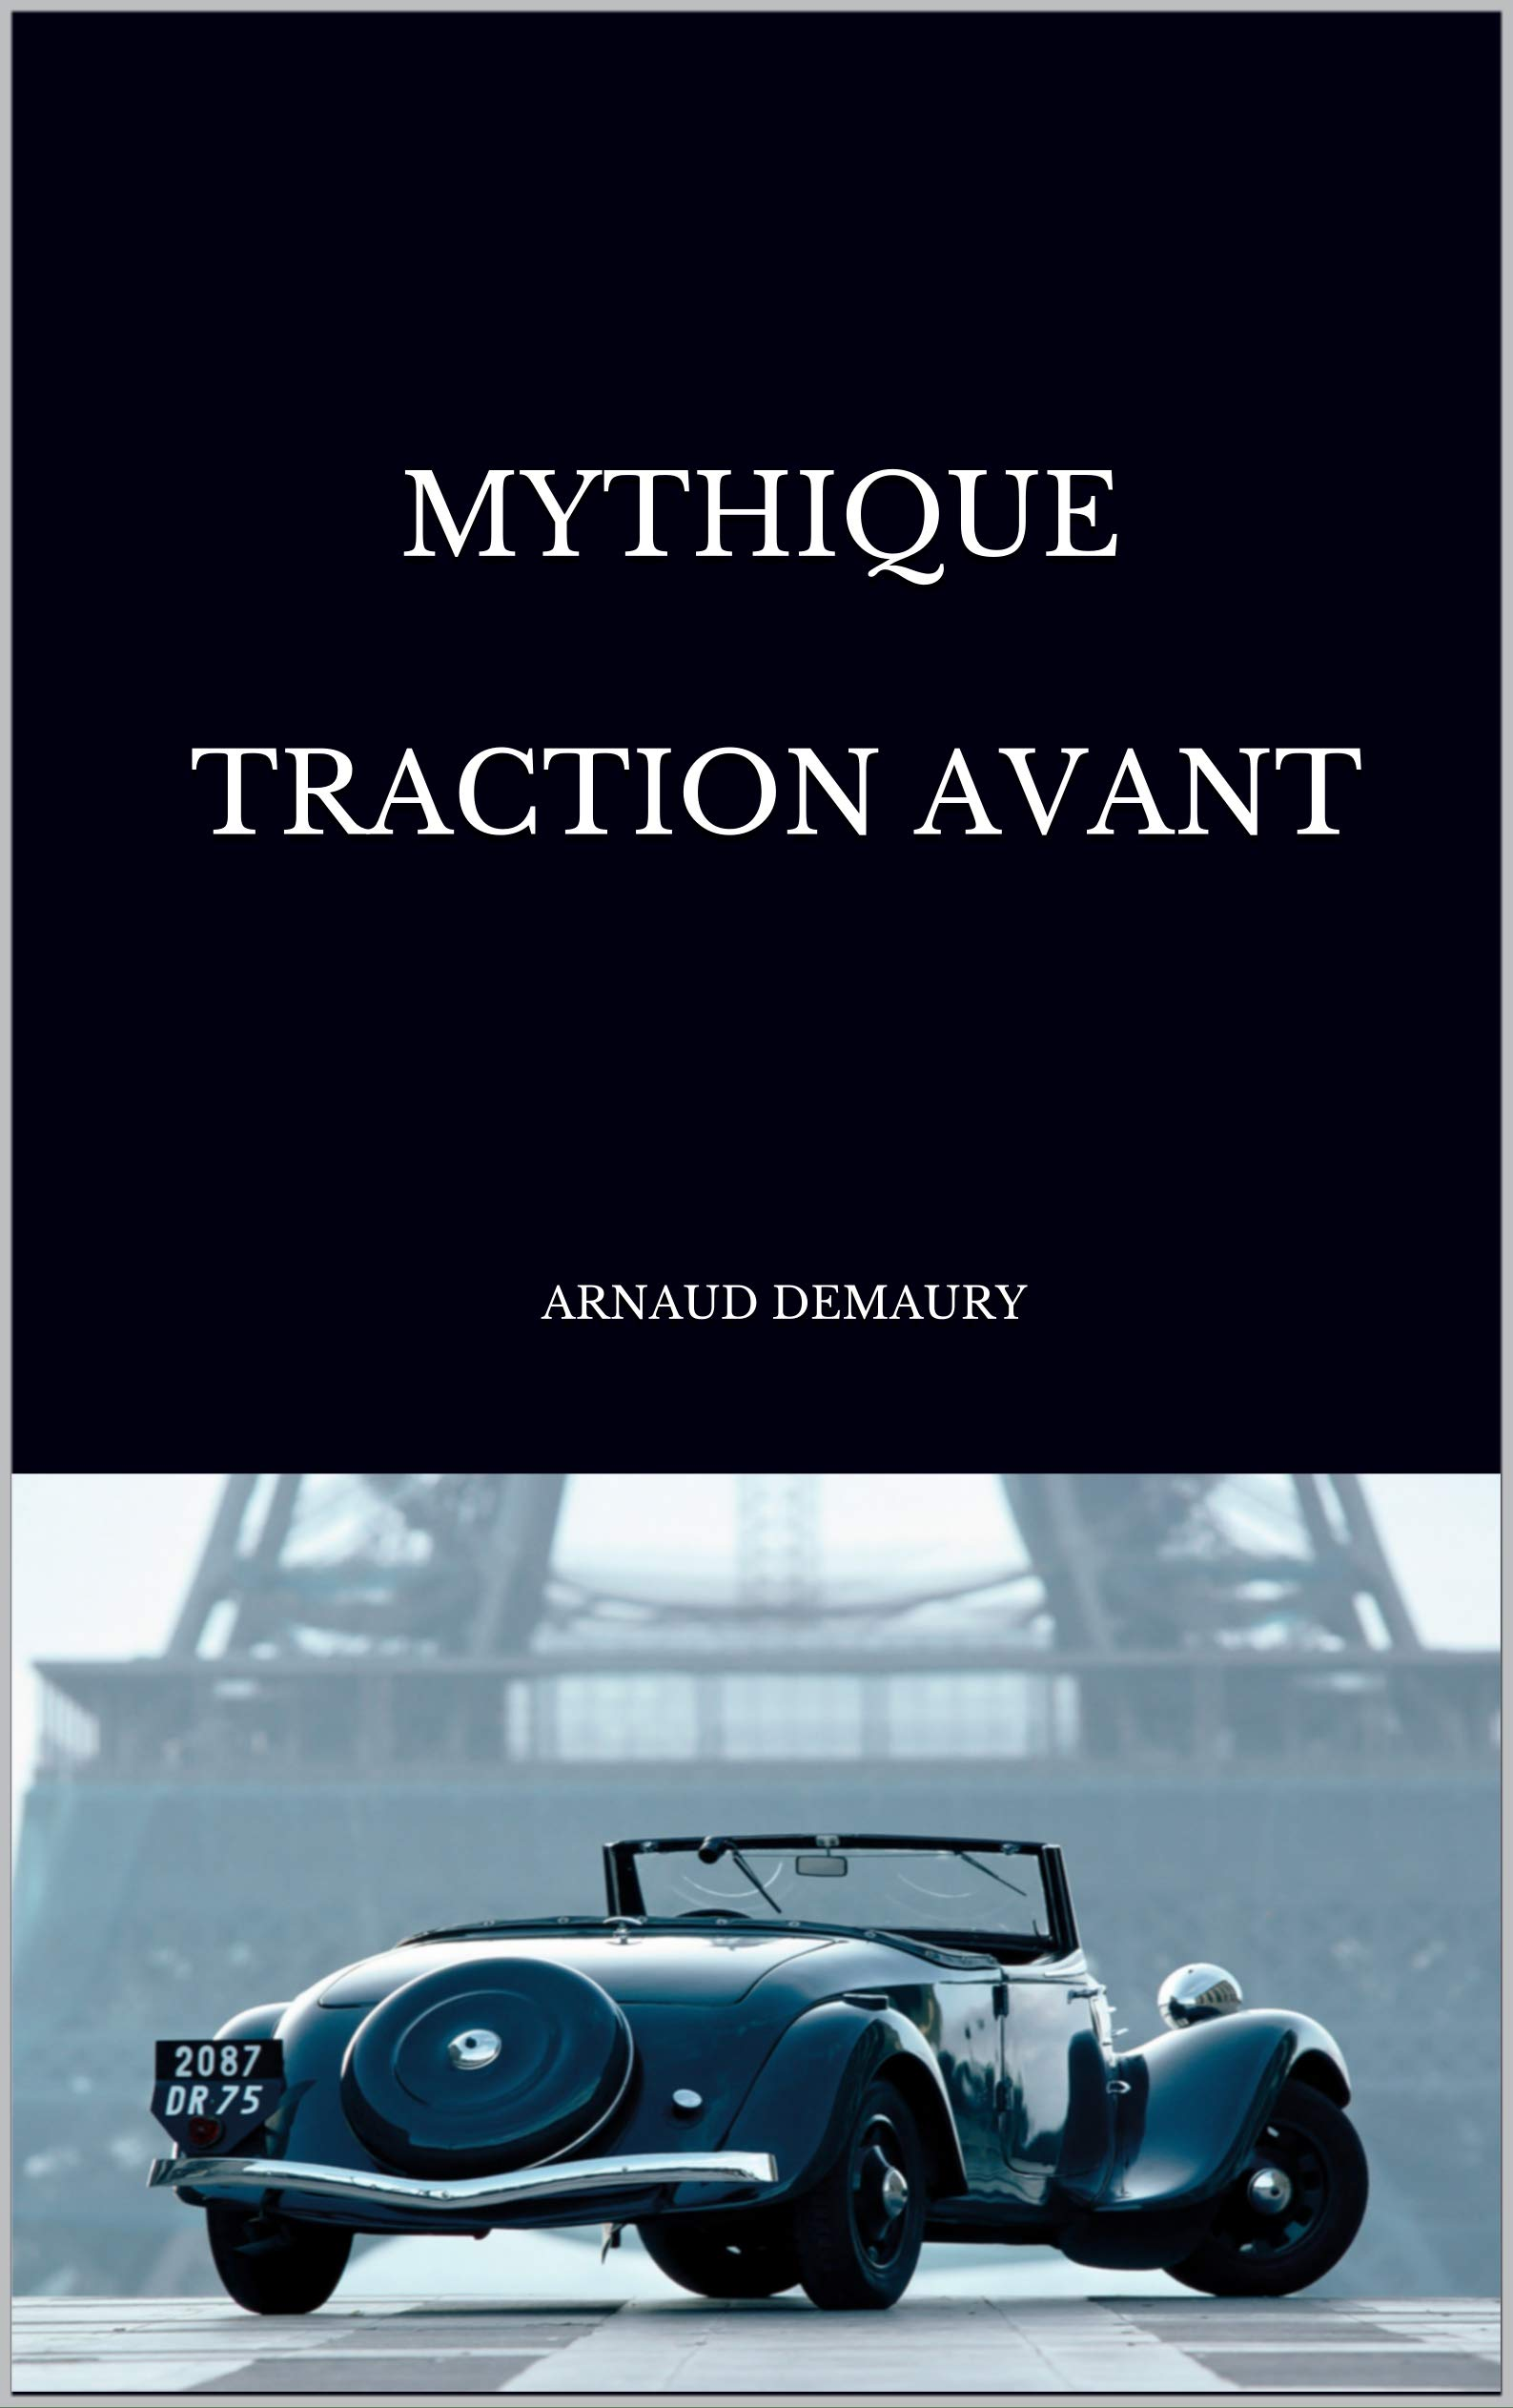 Mythique Traction Avant por Arnaud Demaury